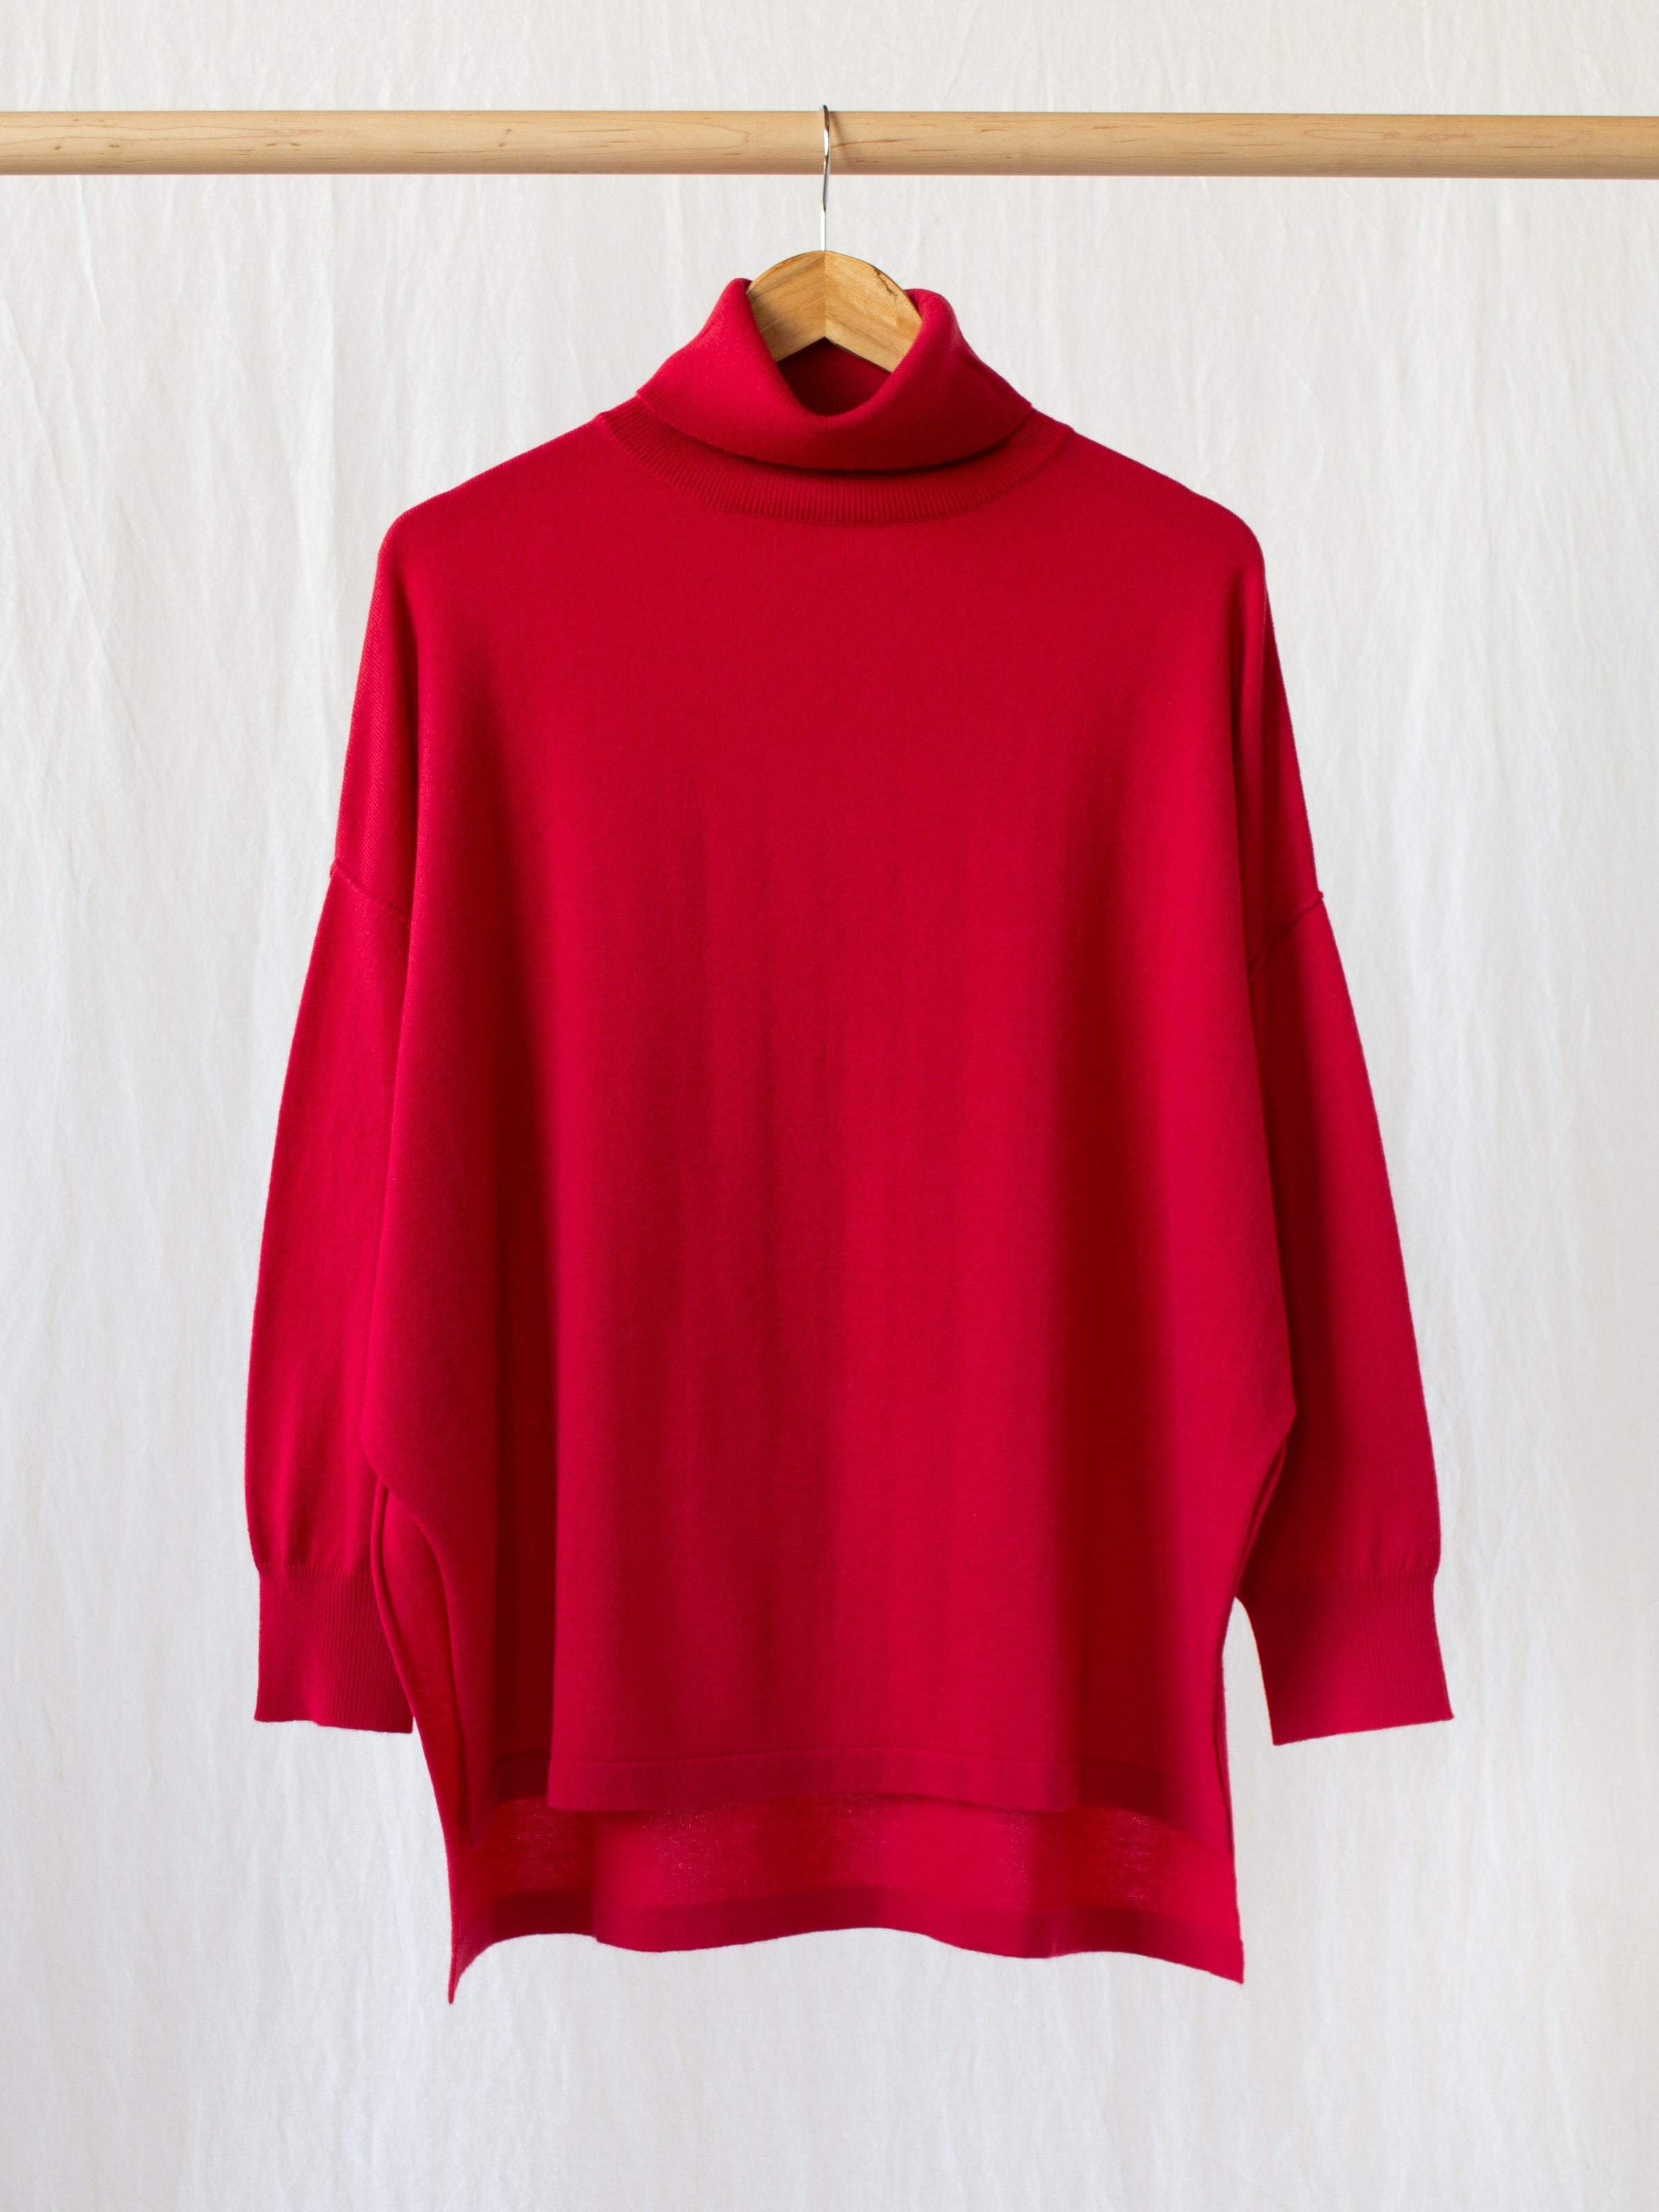 Namu Shop - Veritecoeur Relaxed Cashmere Turtleneck Sweater - Red